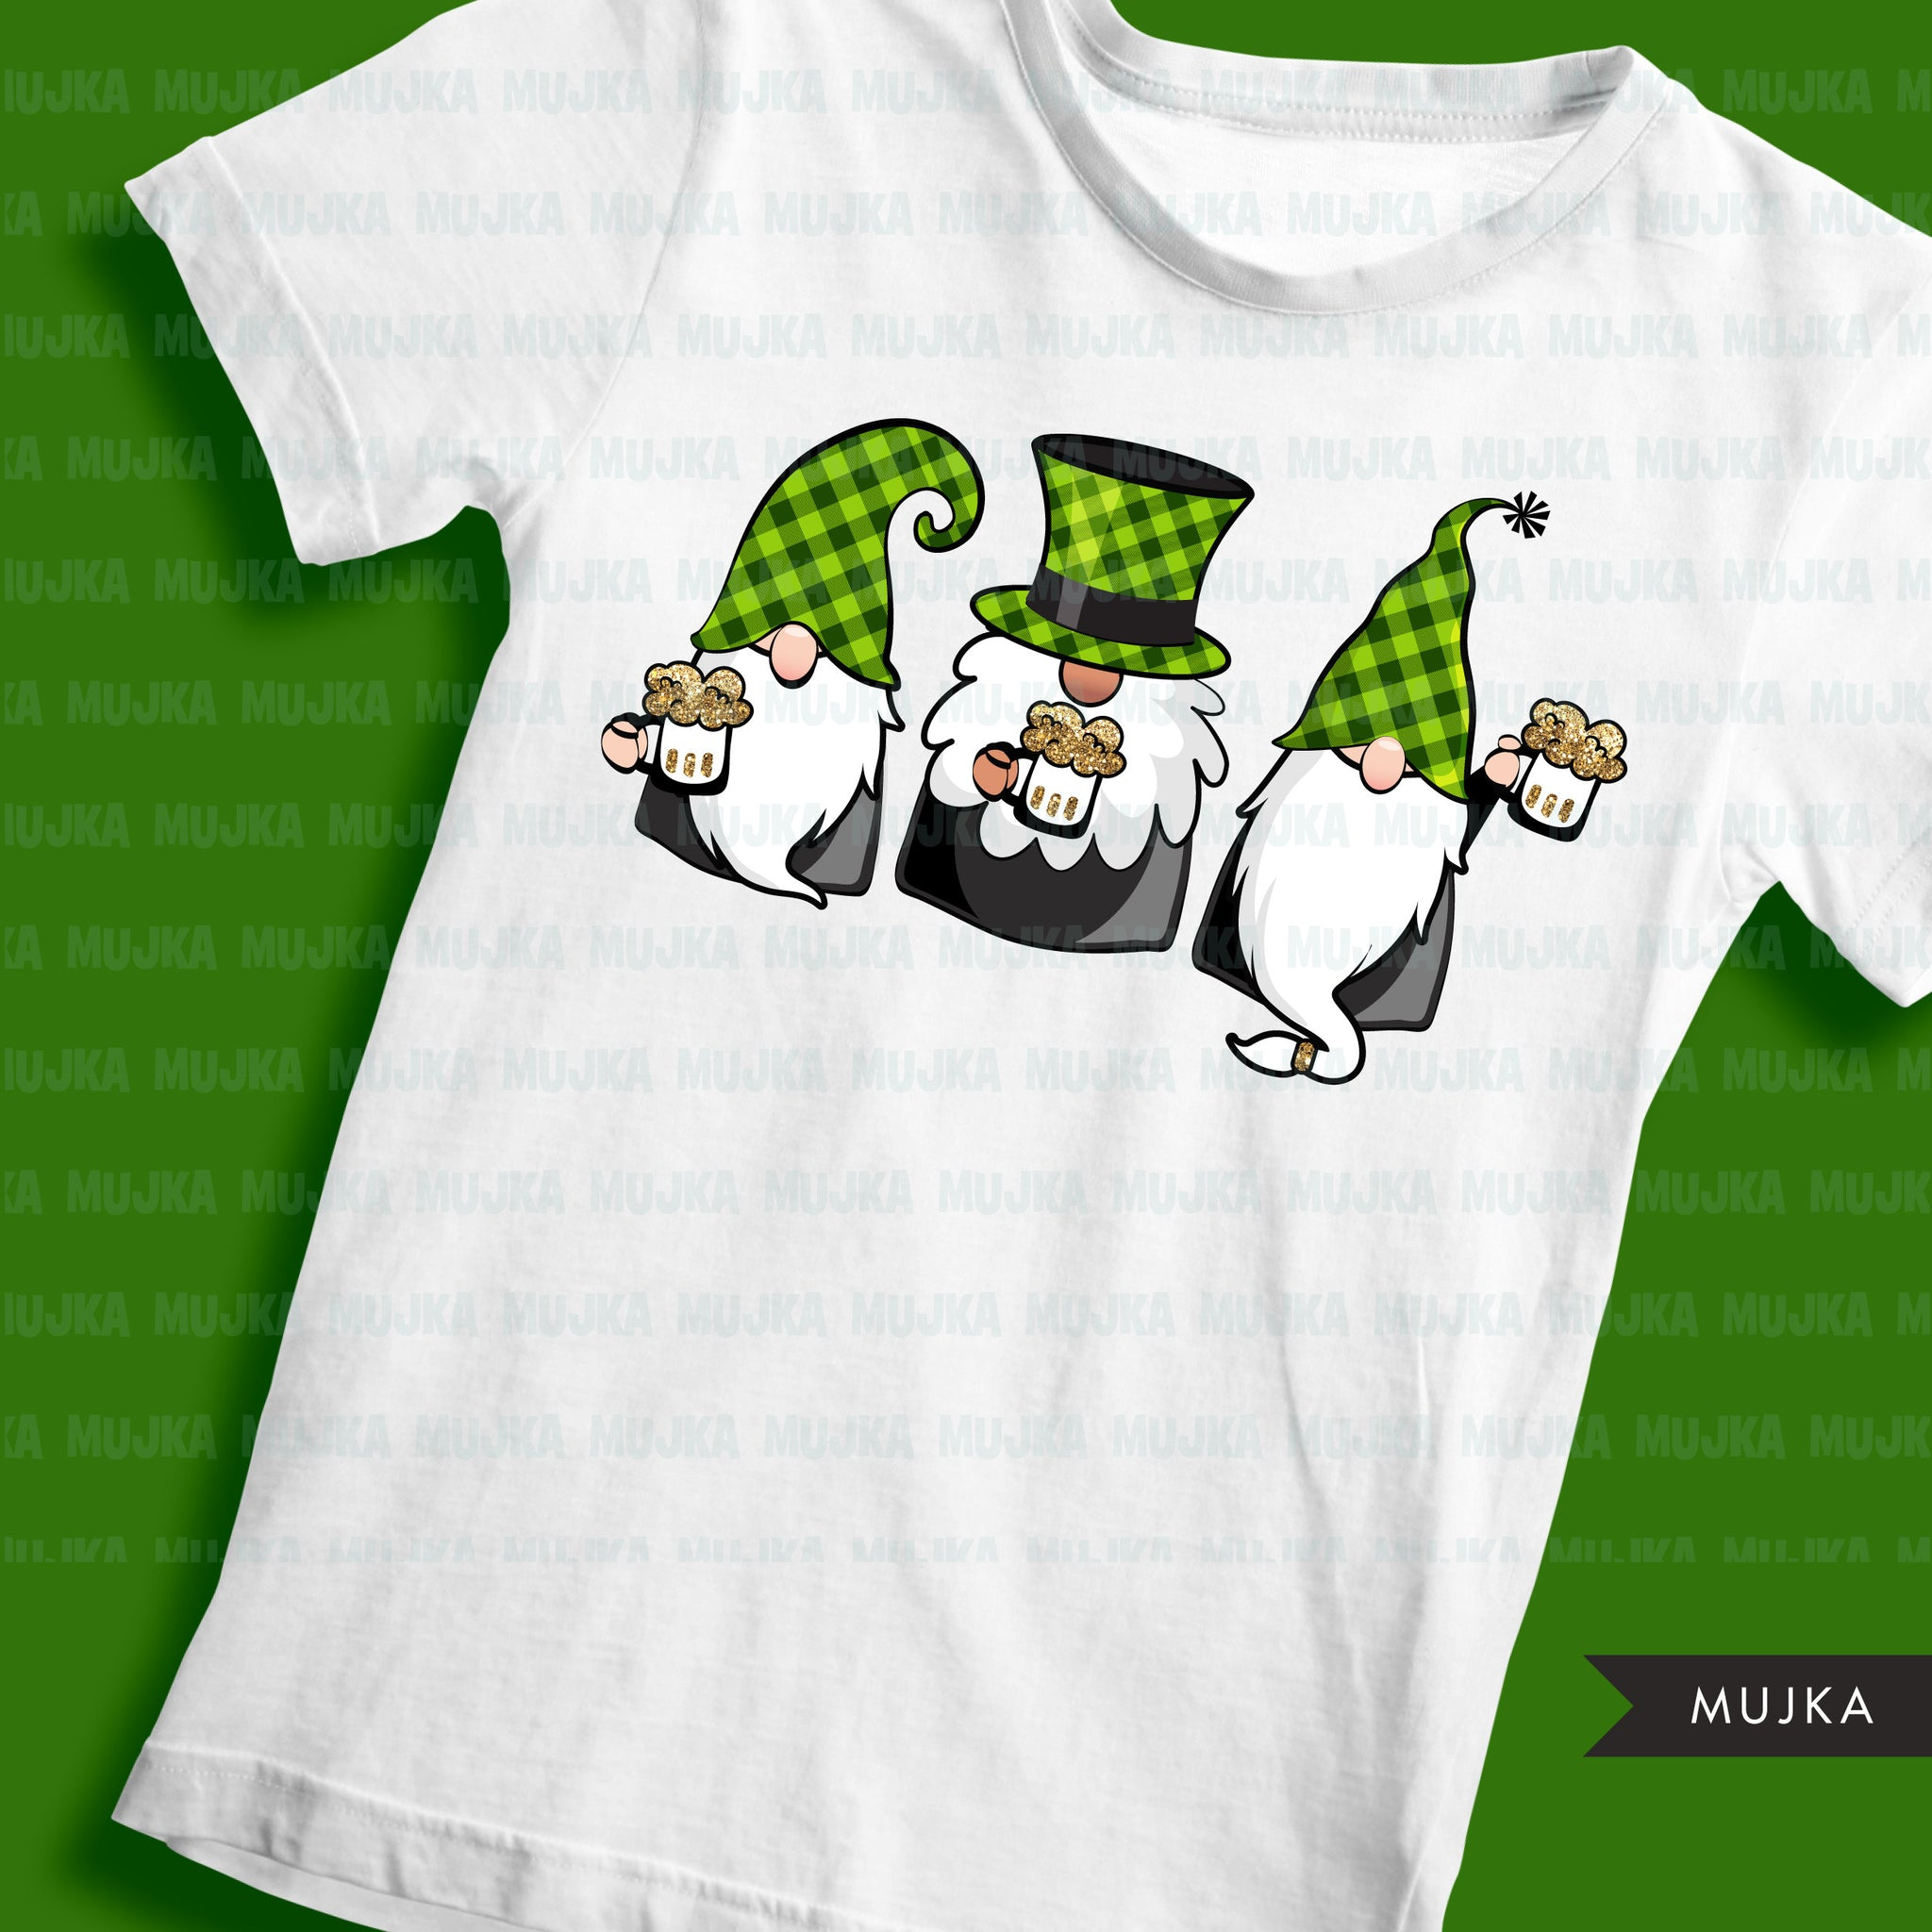 St Patricks Day Gnome sublimation designs, png shirt design, chillin with my gnomies, plaid pattern, digital download files for cricut